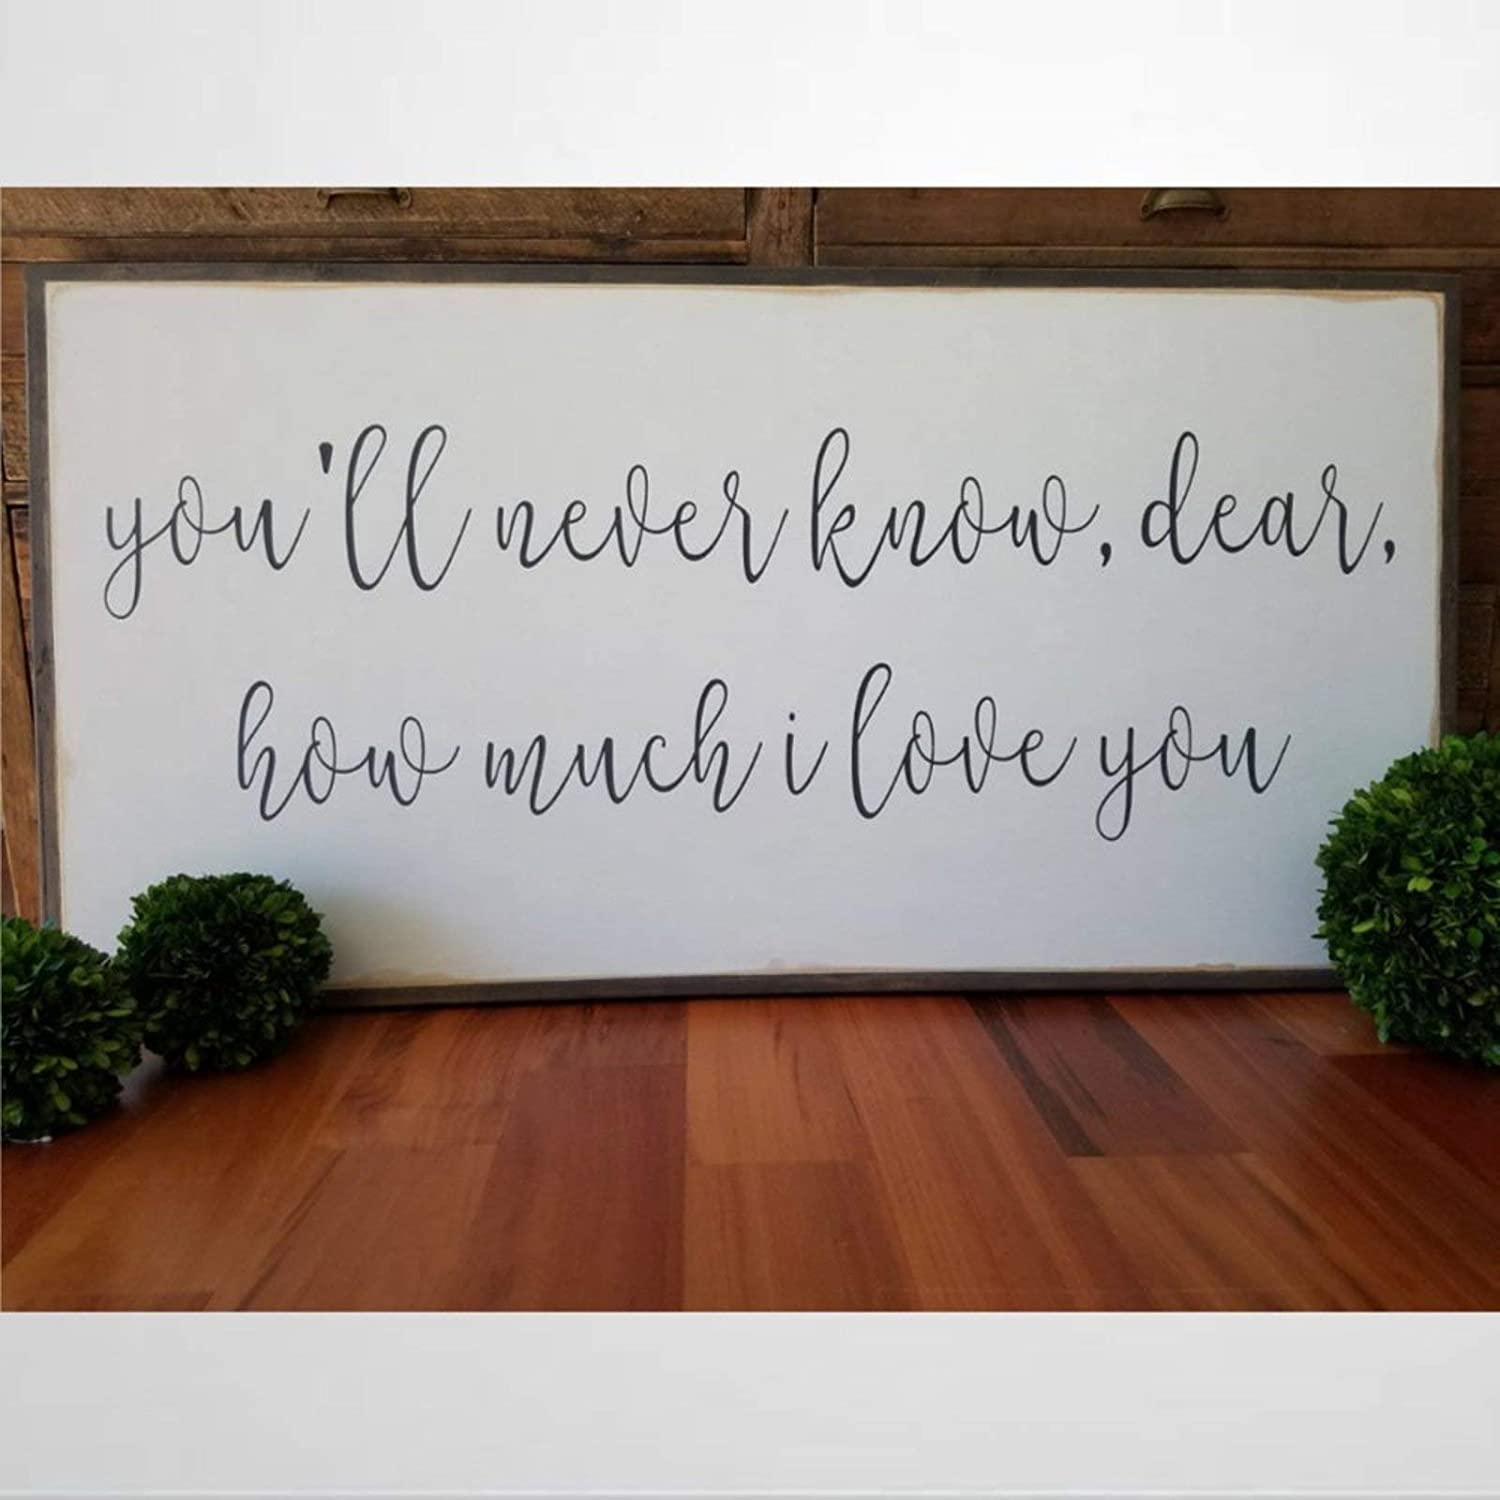 BYRON HOYLE You'll Never Know Dear How Much I Love You Framed Wood Sign, Wooden Wall Hanging Art, Inspirational Farmhouse Wall Plaque, Rustic Home Decor for Nursery, Porch, Gallery Wall, Housewarming